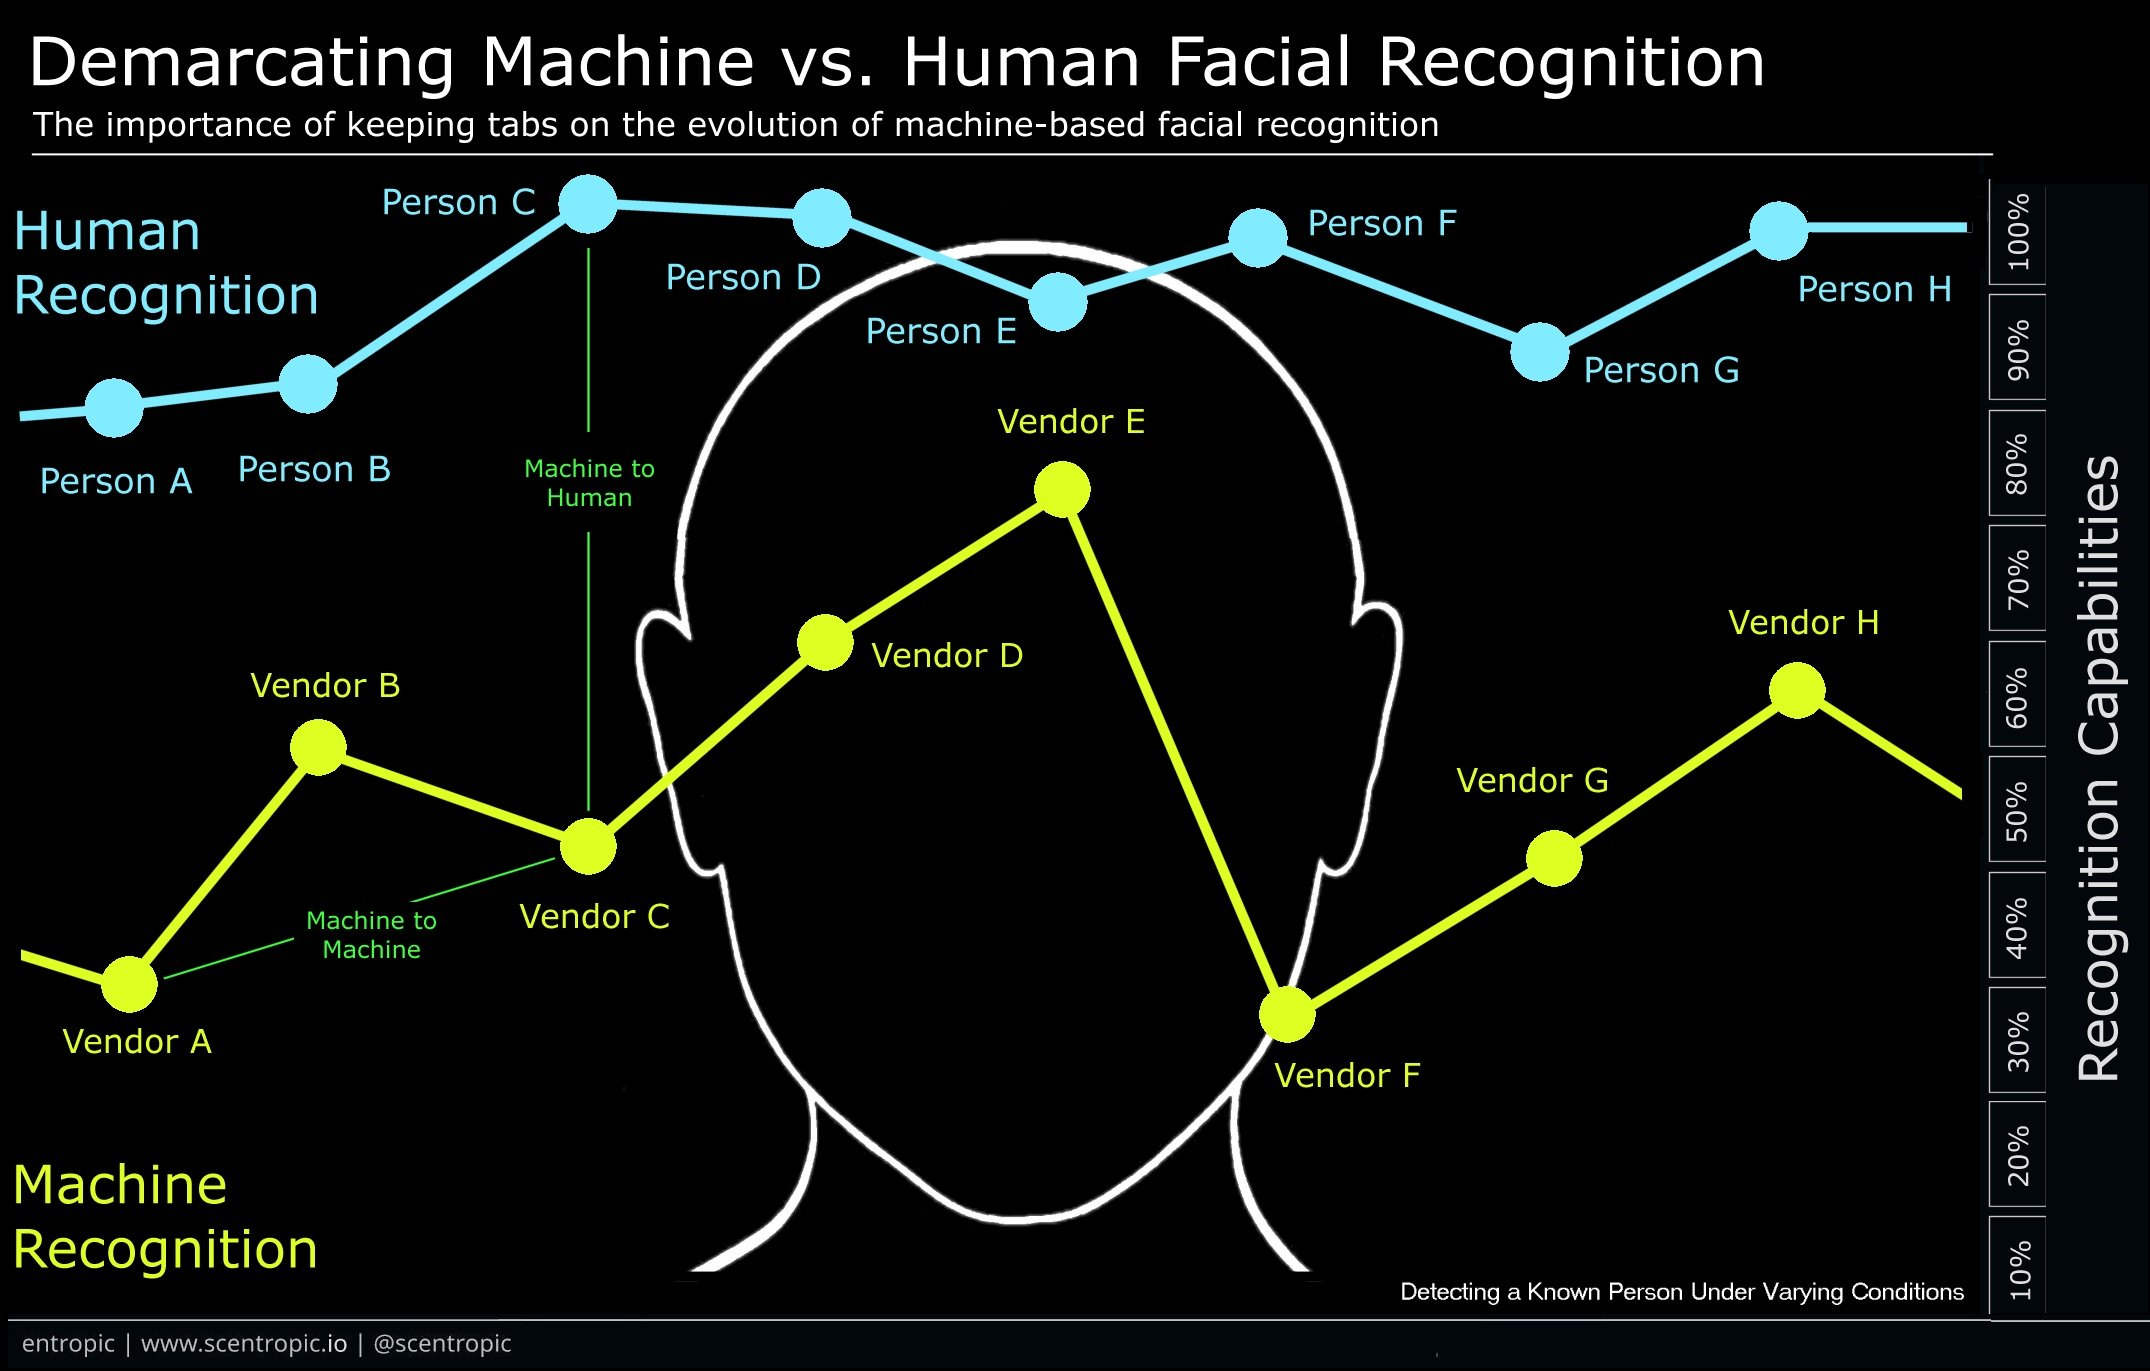 Keeping Tabs on The Evolution of Facial Recognition